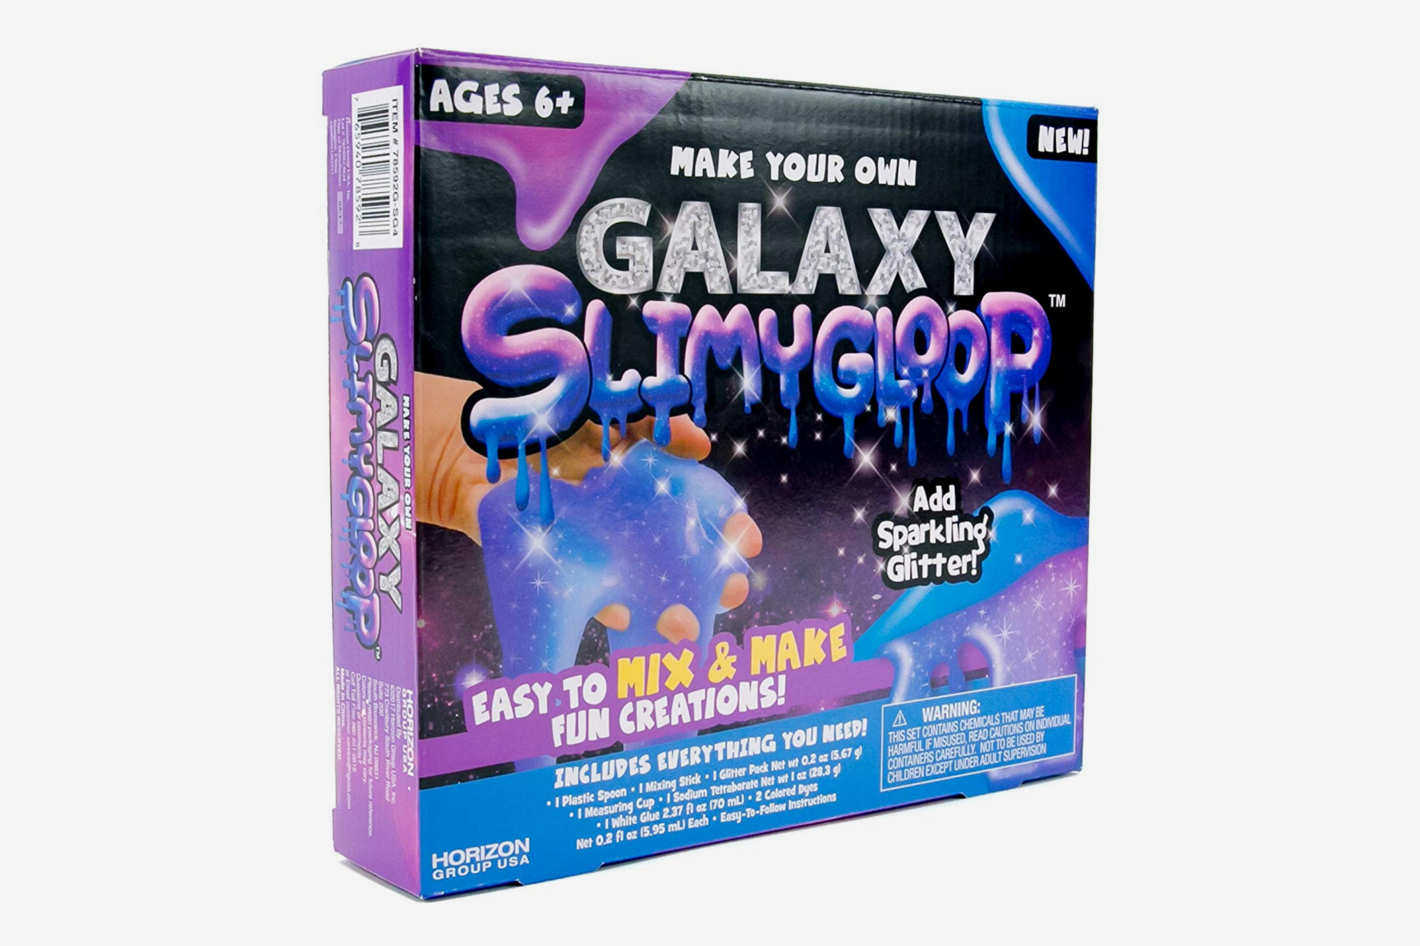 Make Your Own Galaxy Slimygloop